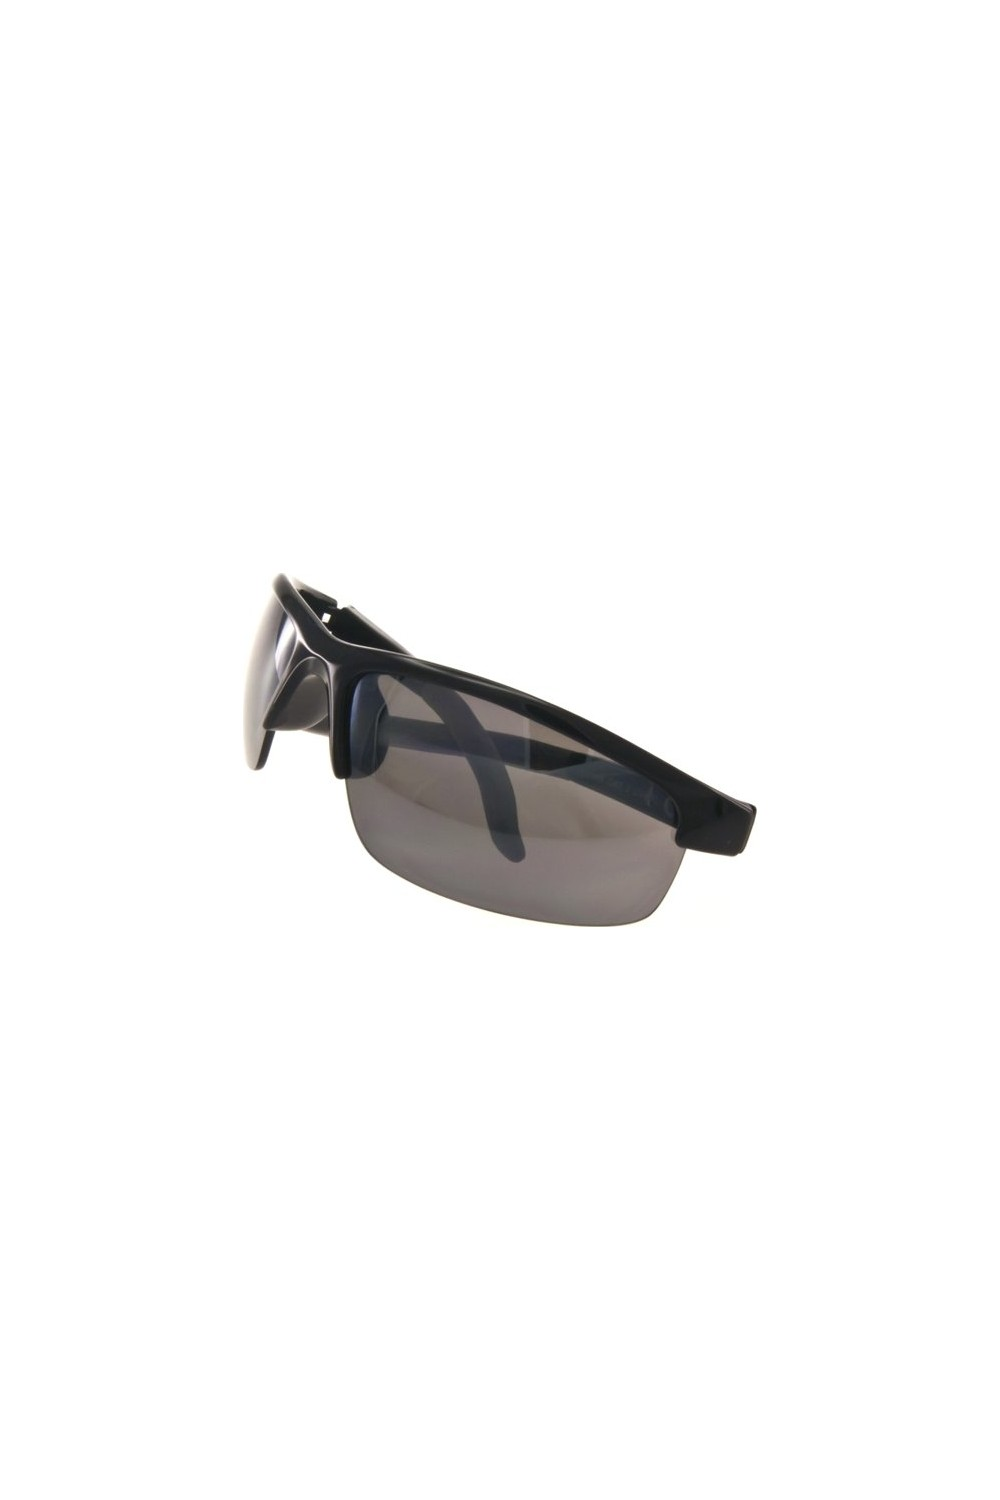 Xoomvisio Men's Sunglasses 067108